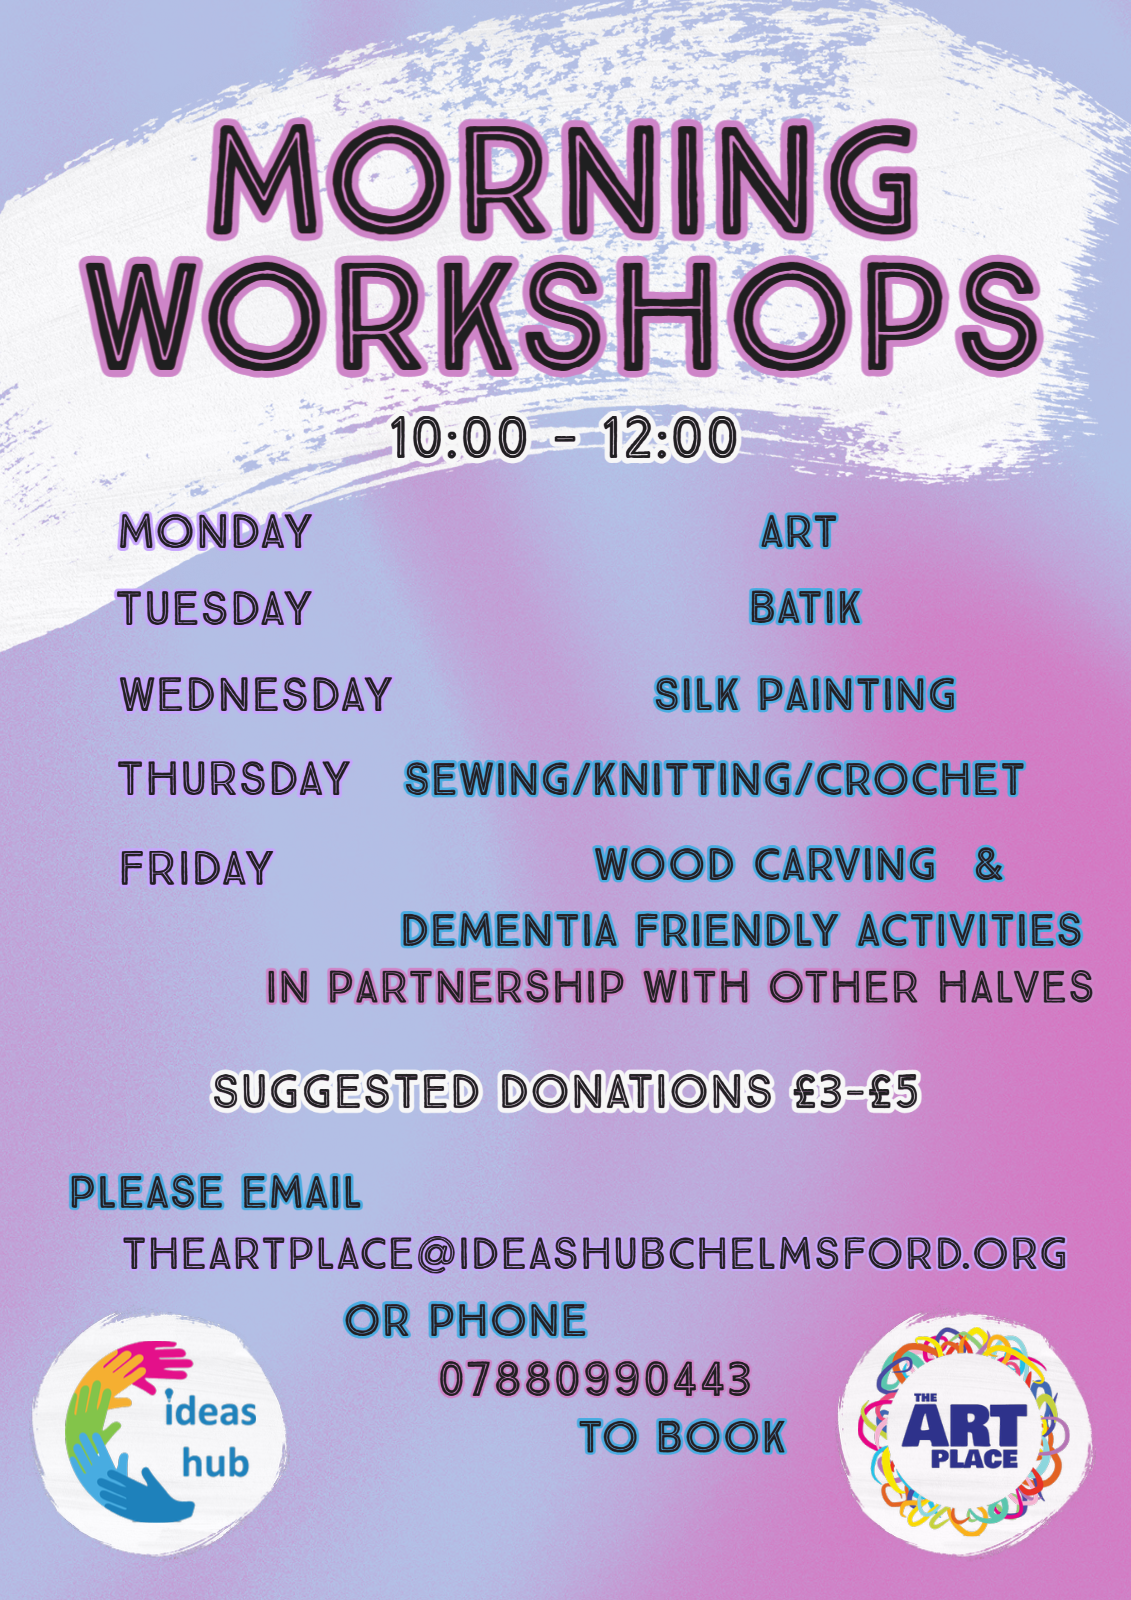 Morning Workshops at The Art Place